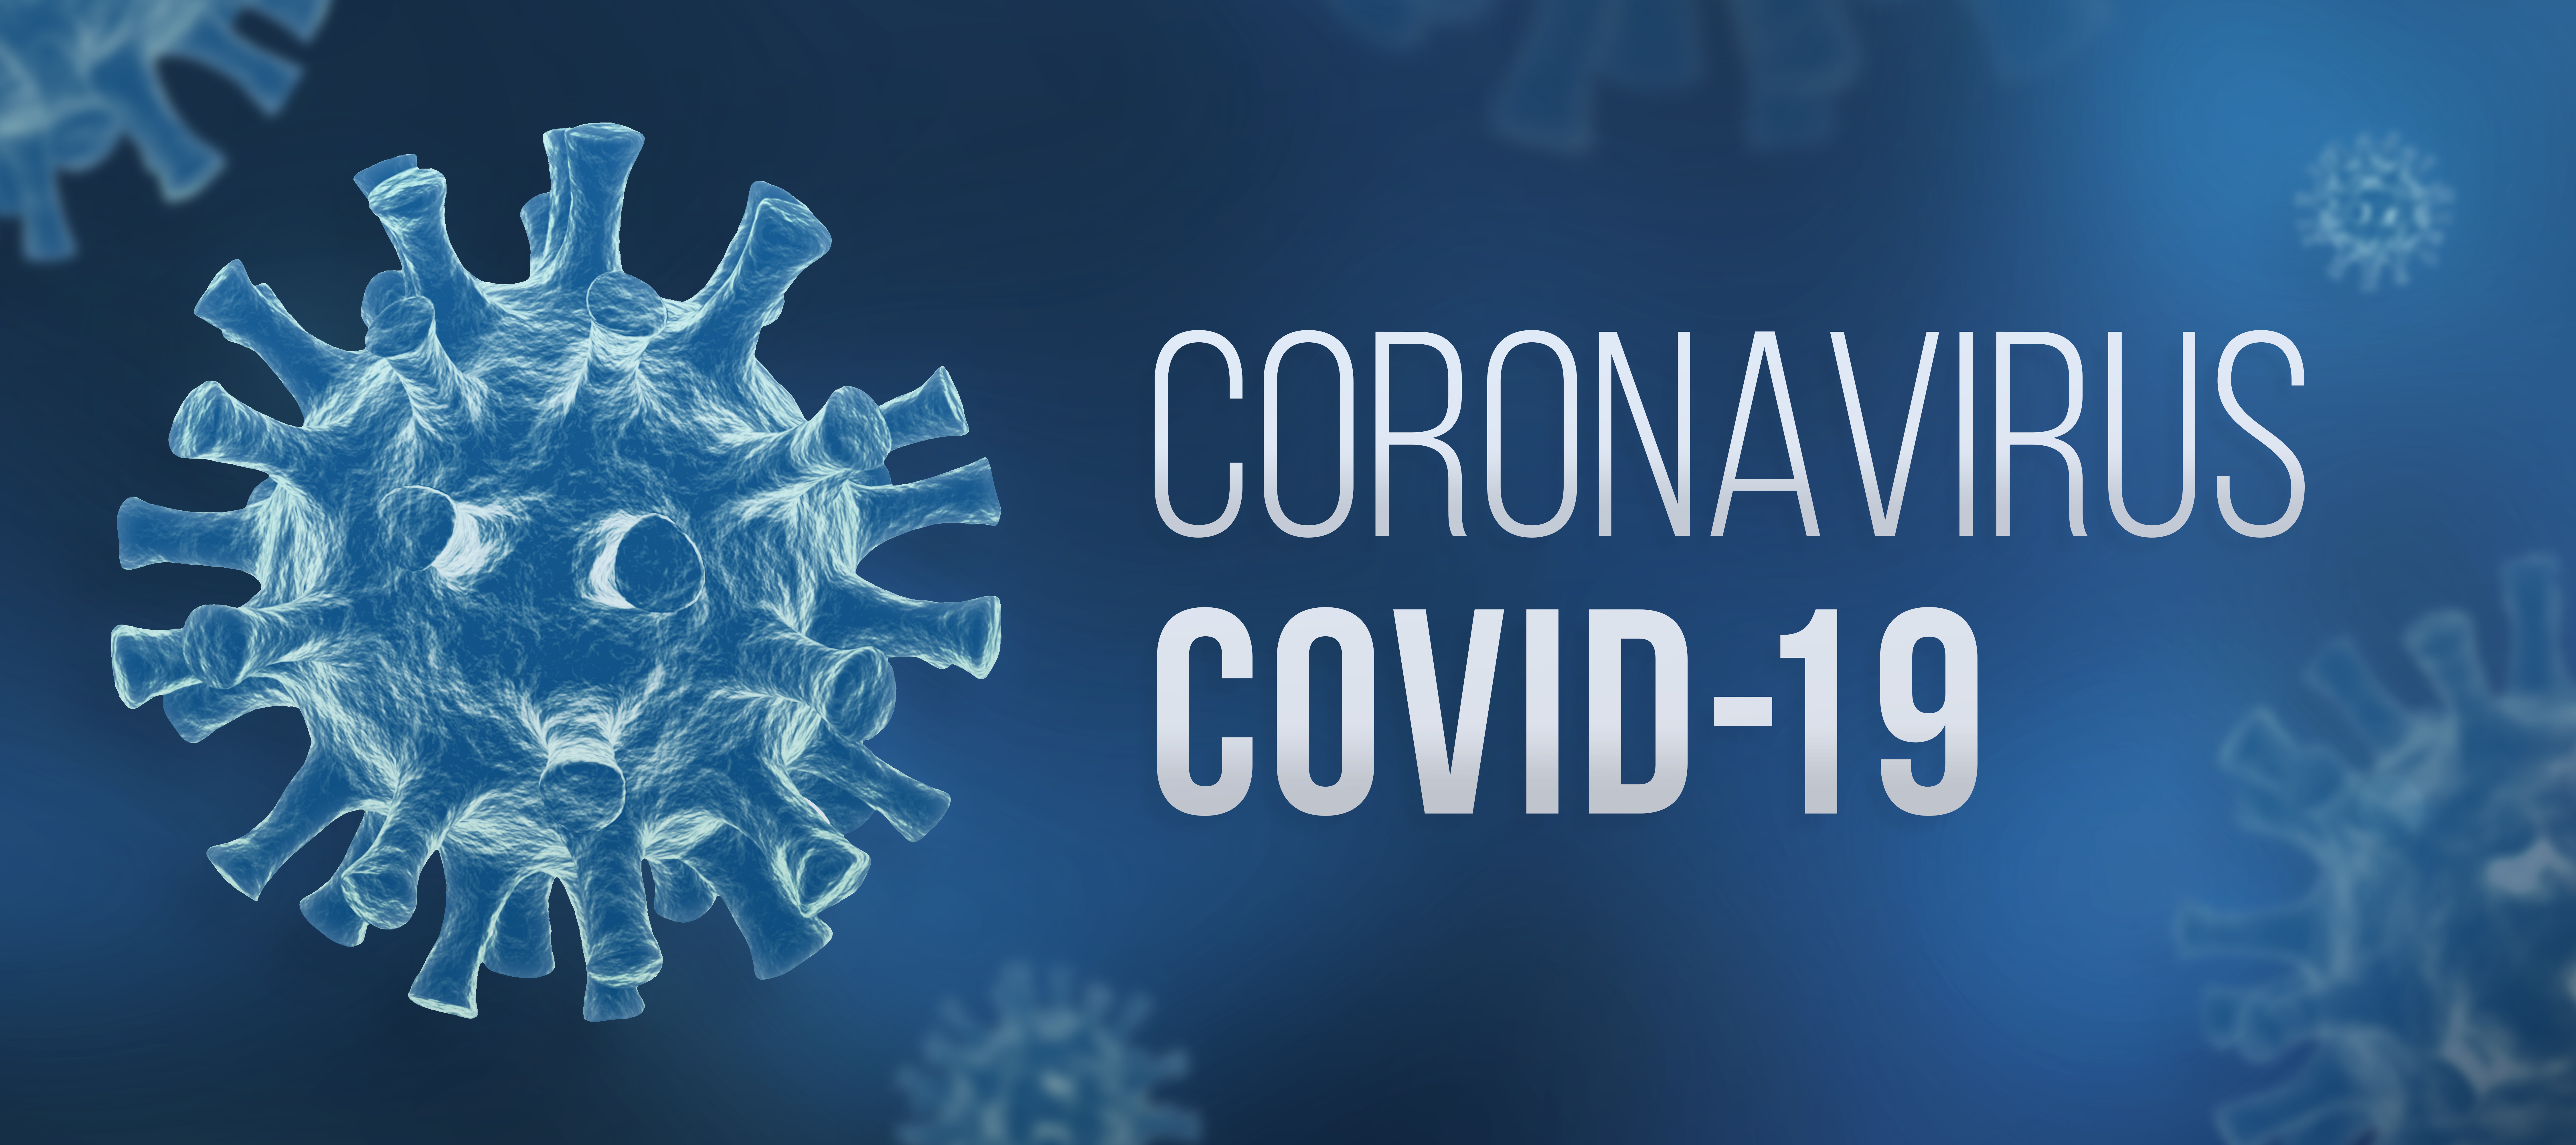 HUNT'S ROLE TEMPORARILY CHANGED TO ALLOW FOR COVID-19 FOCUS